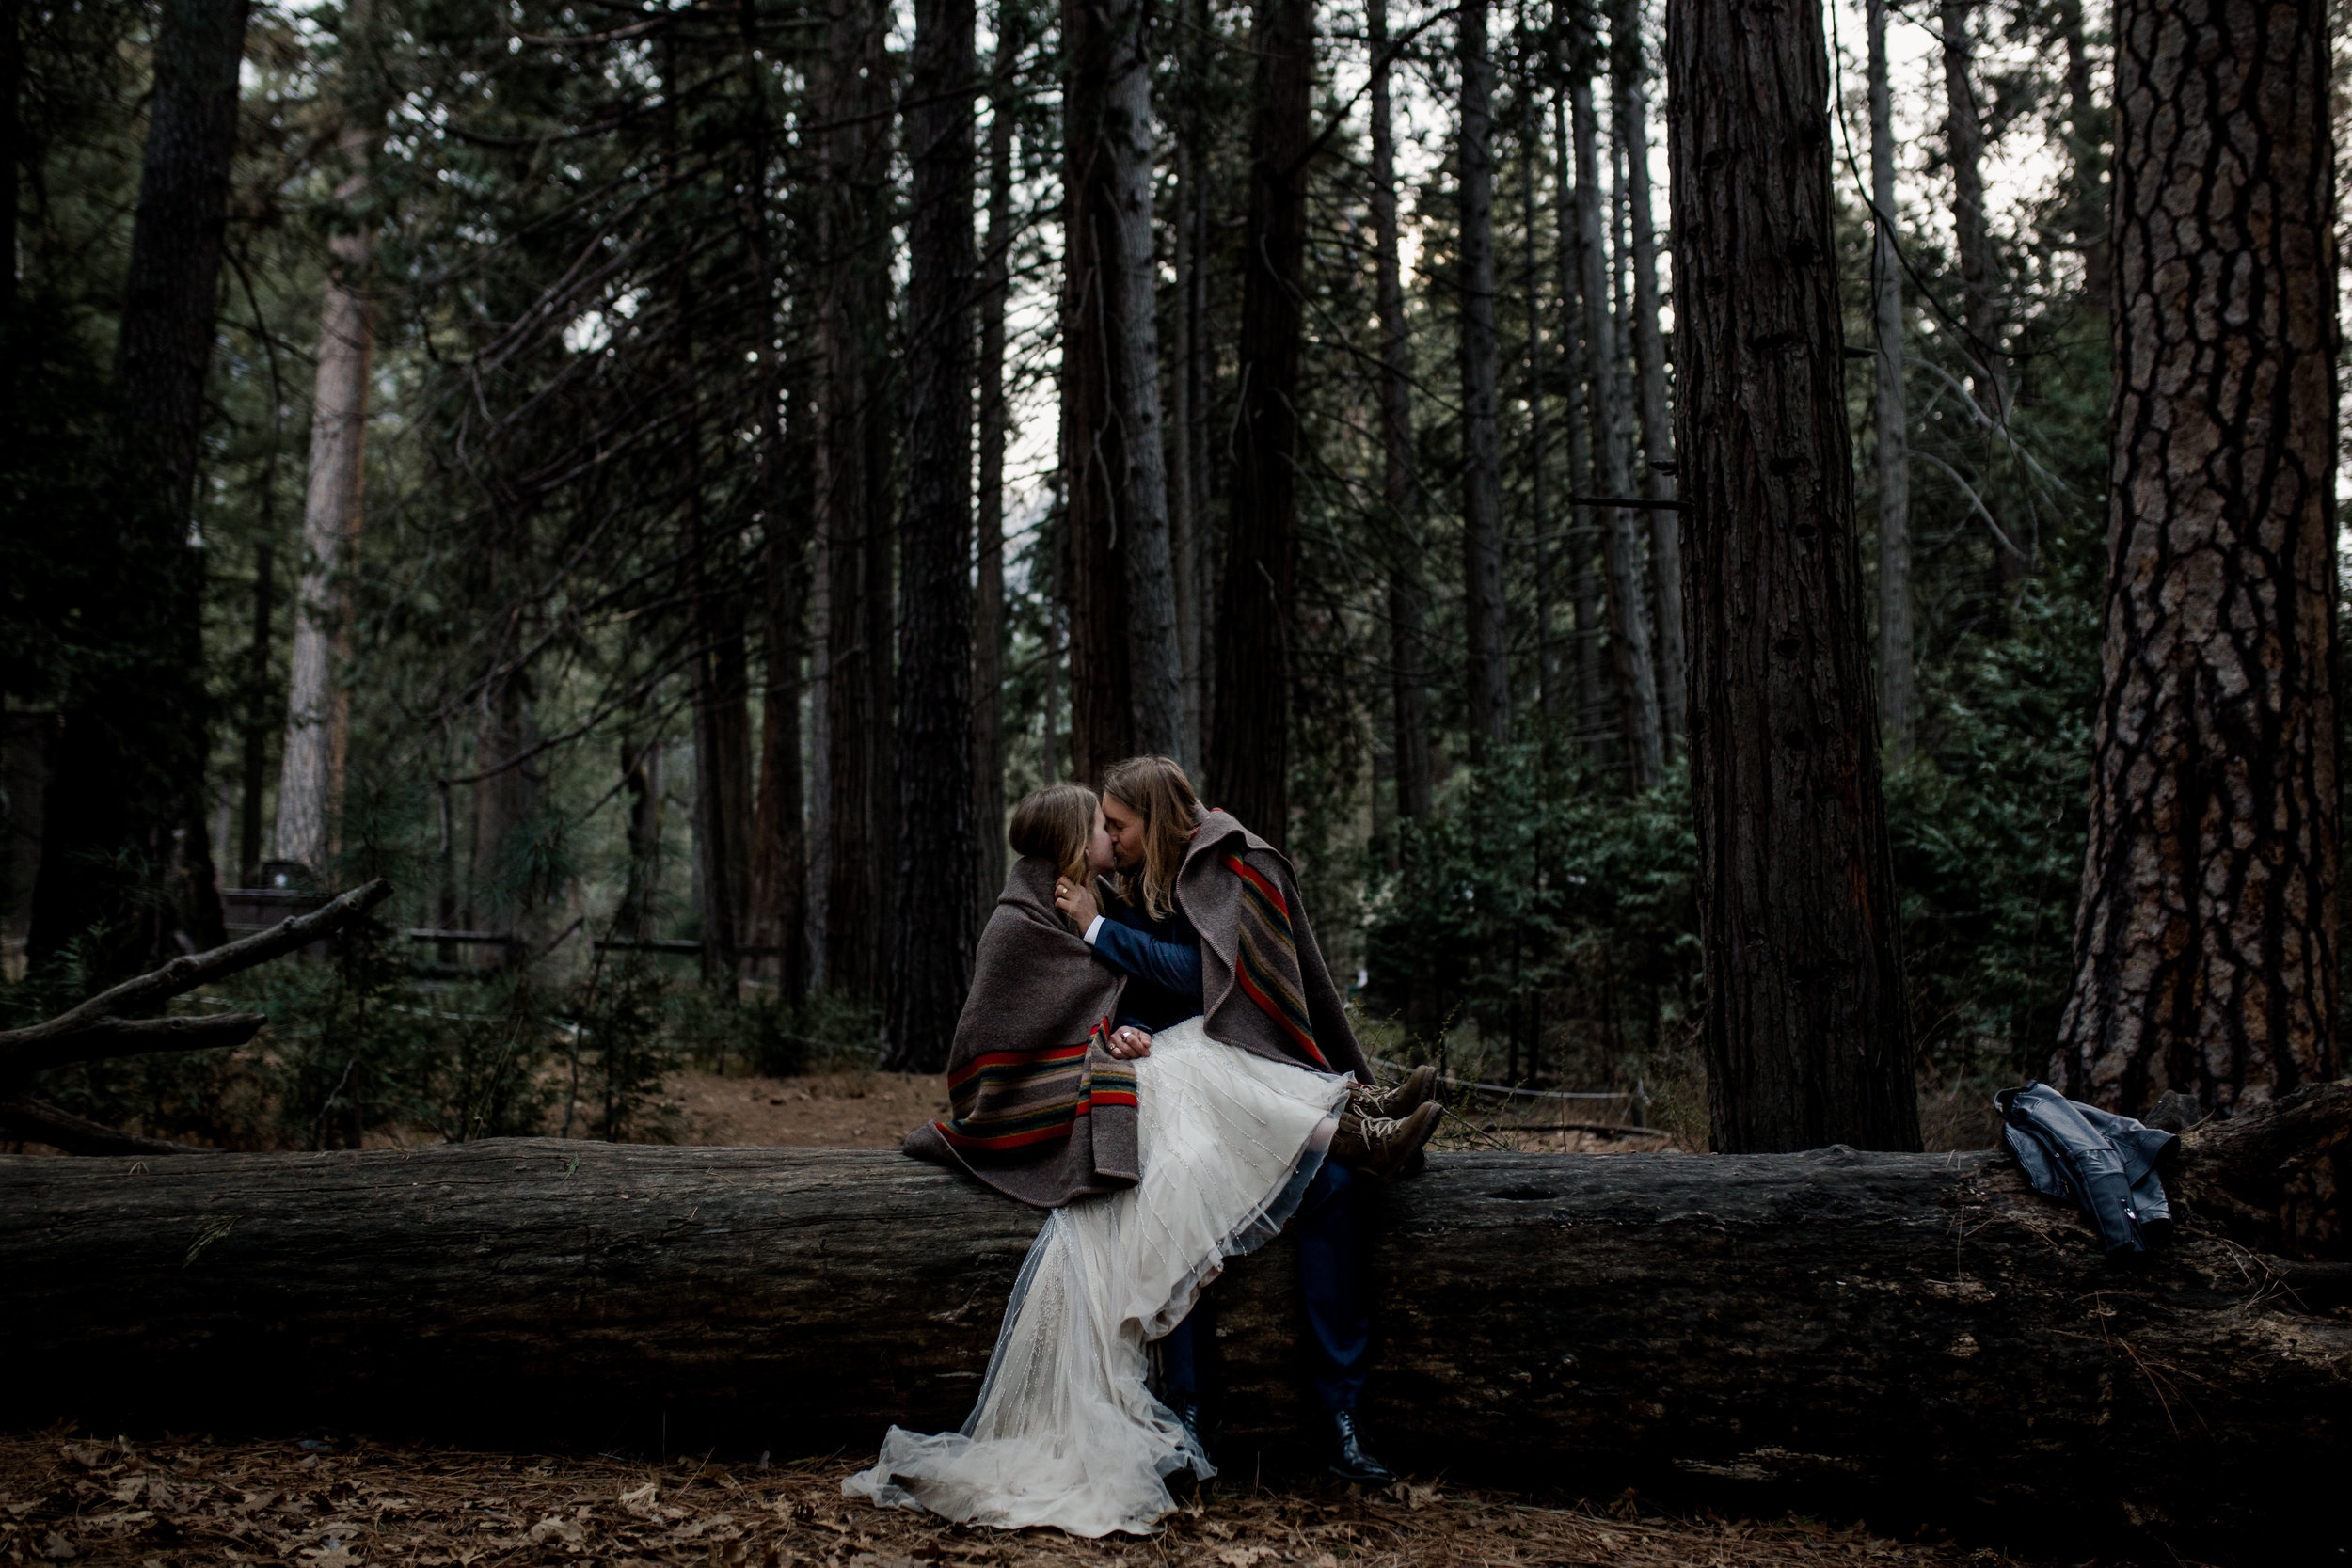 nicole-daacke-photography-yousemite-national-park-elopement-photographer-winter-cloud-moody-elope-inspiration-yosemite-valley-tunnel-view-winter-cloud-fog-weather-wedding-photos-99.jpg